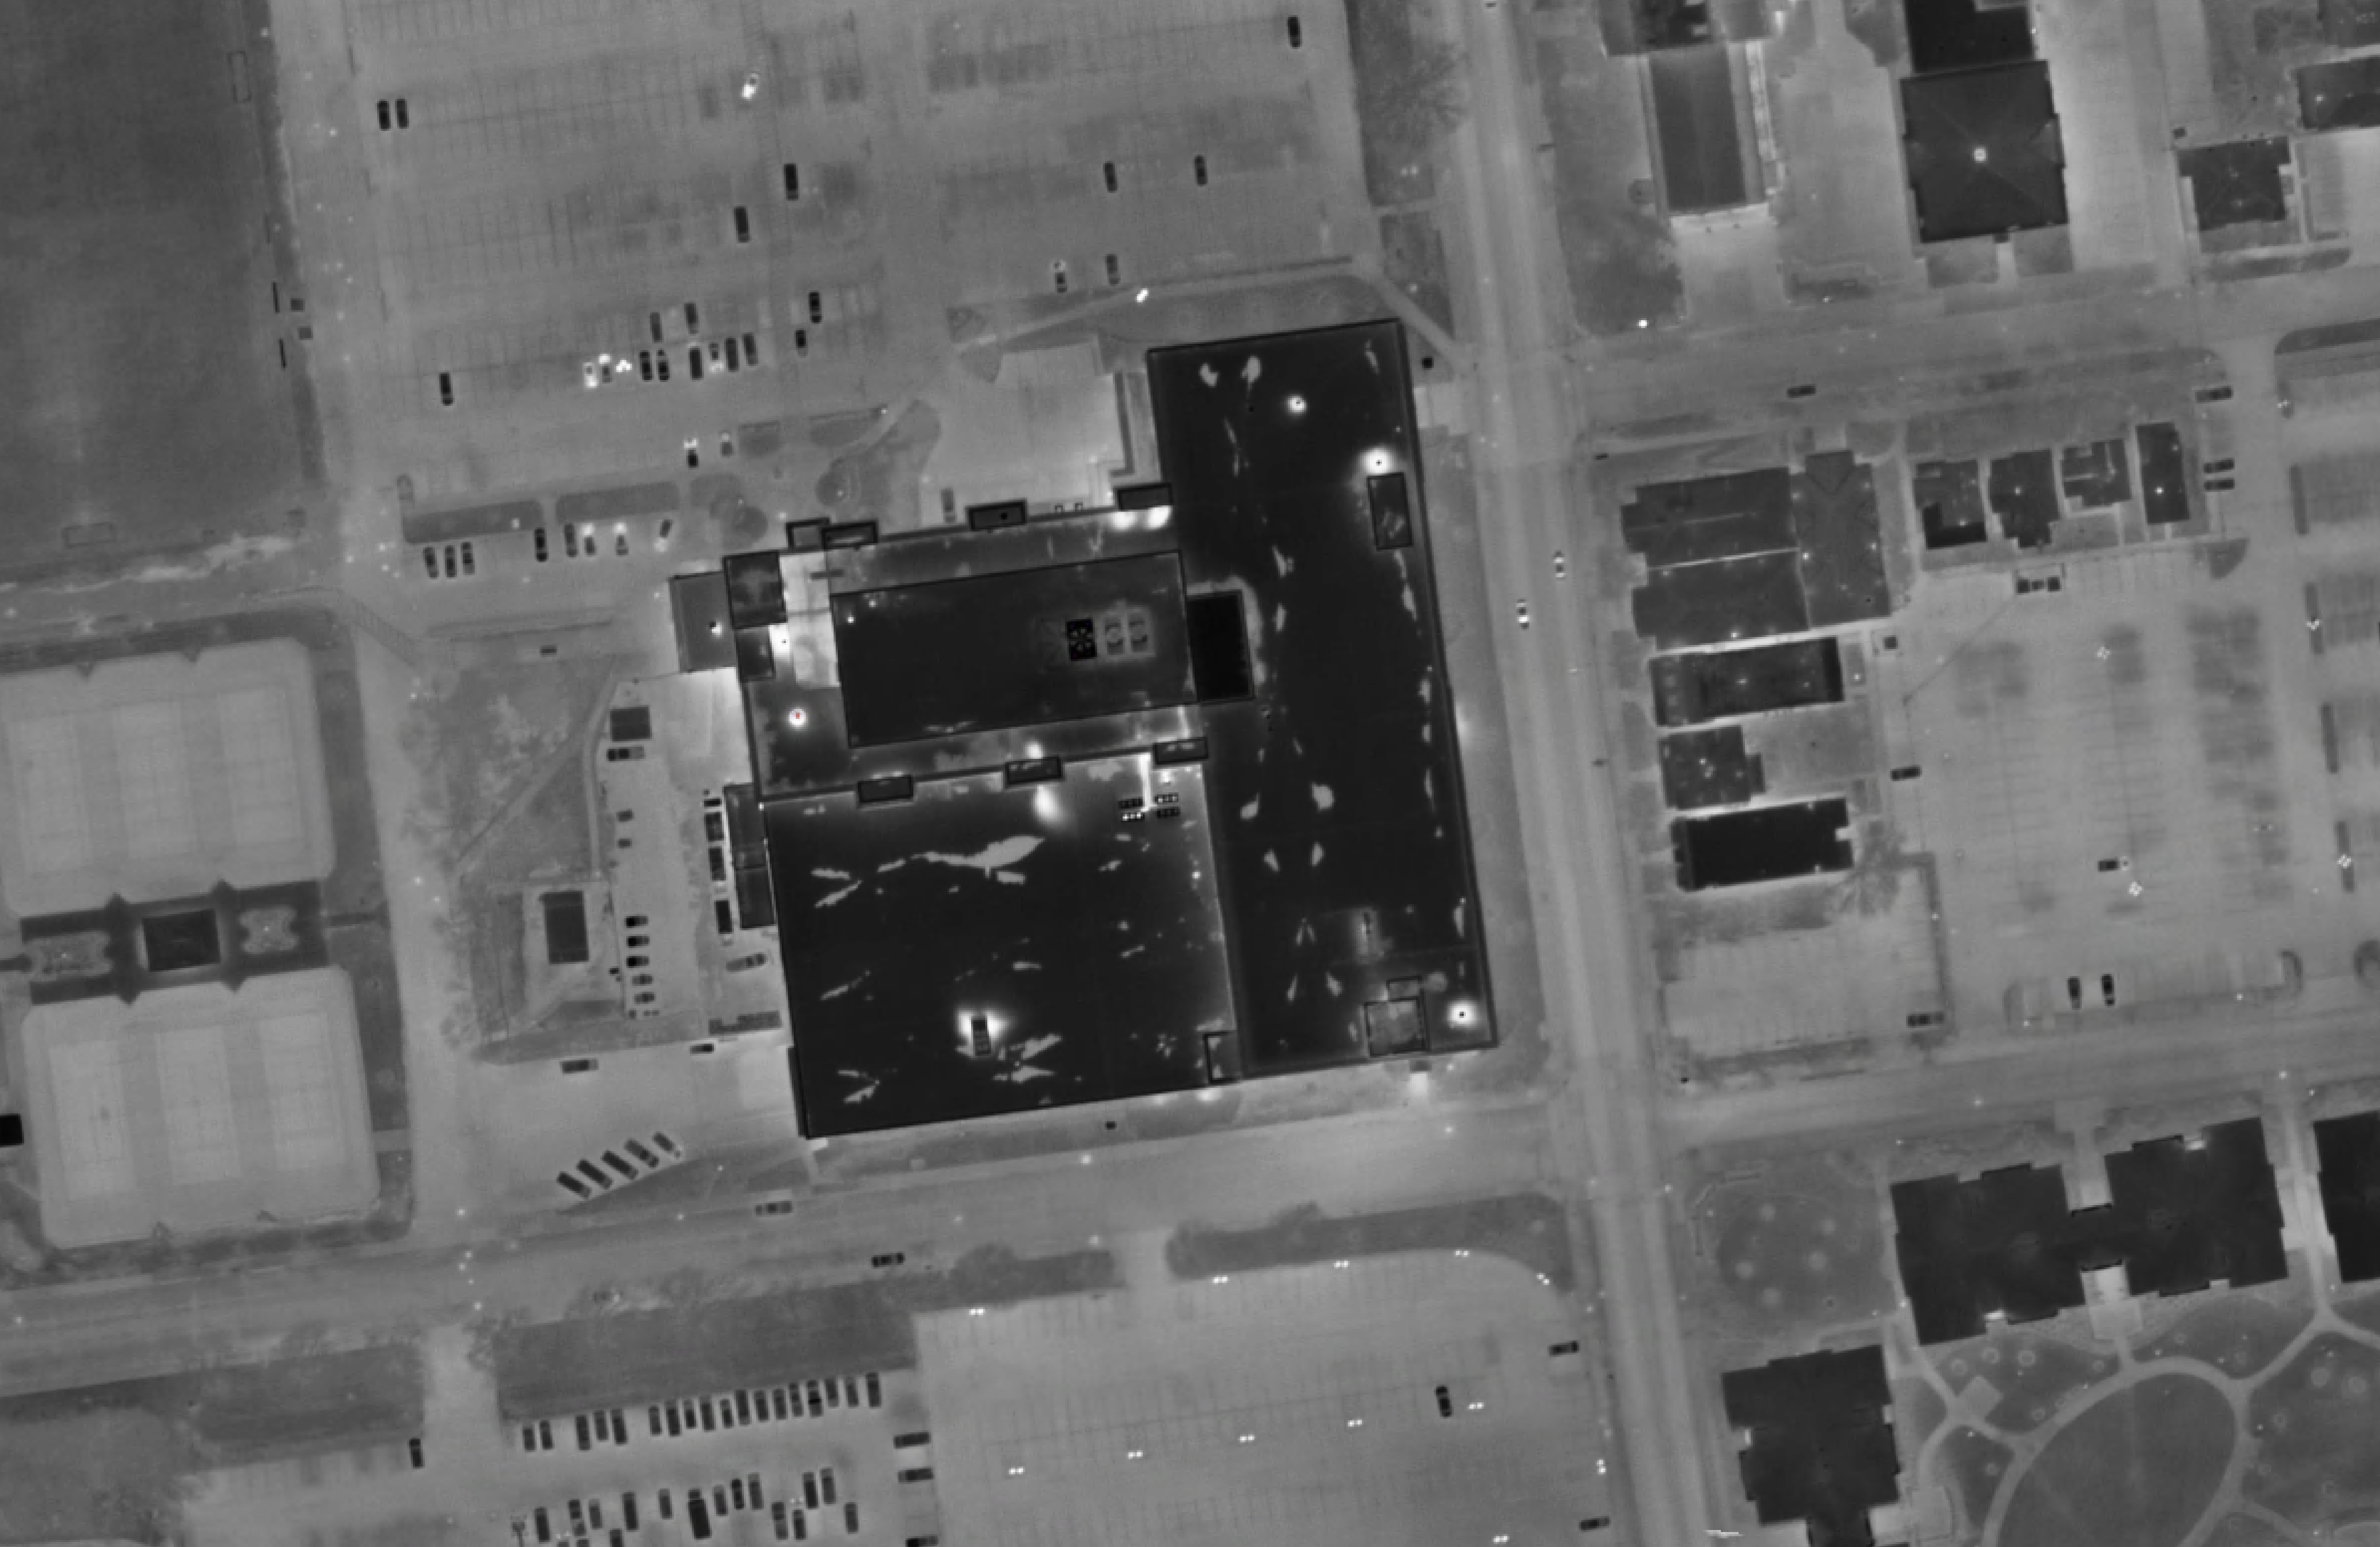 Another image taken by the FLIR sensor shows various temperature anomalies and condition issues on a building roof. Bright spots indicate areas of heat loss and/or moisture retention.